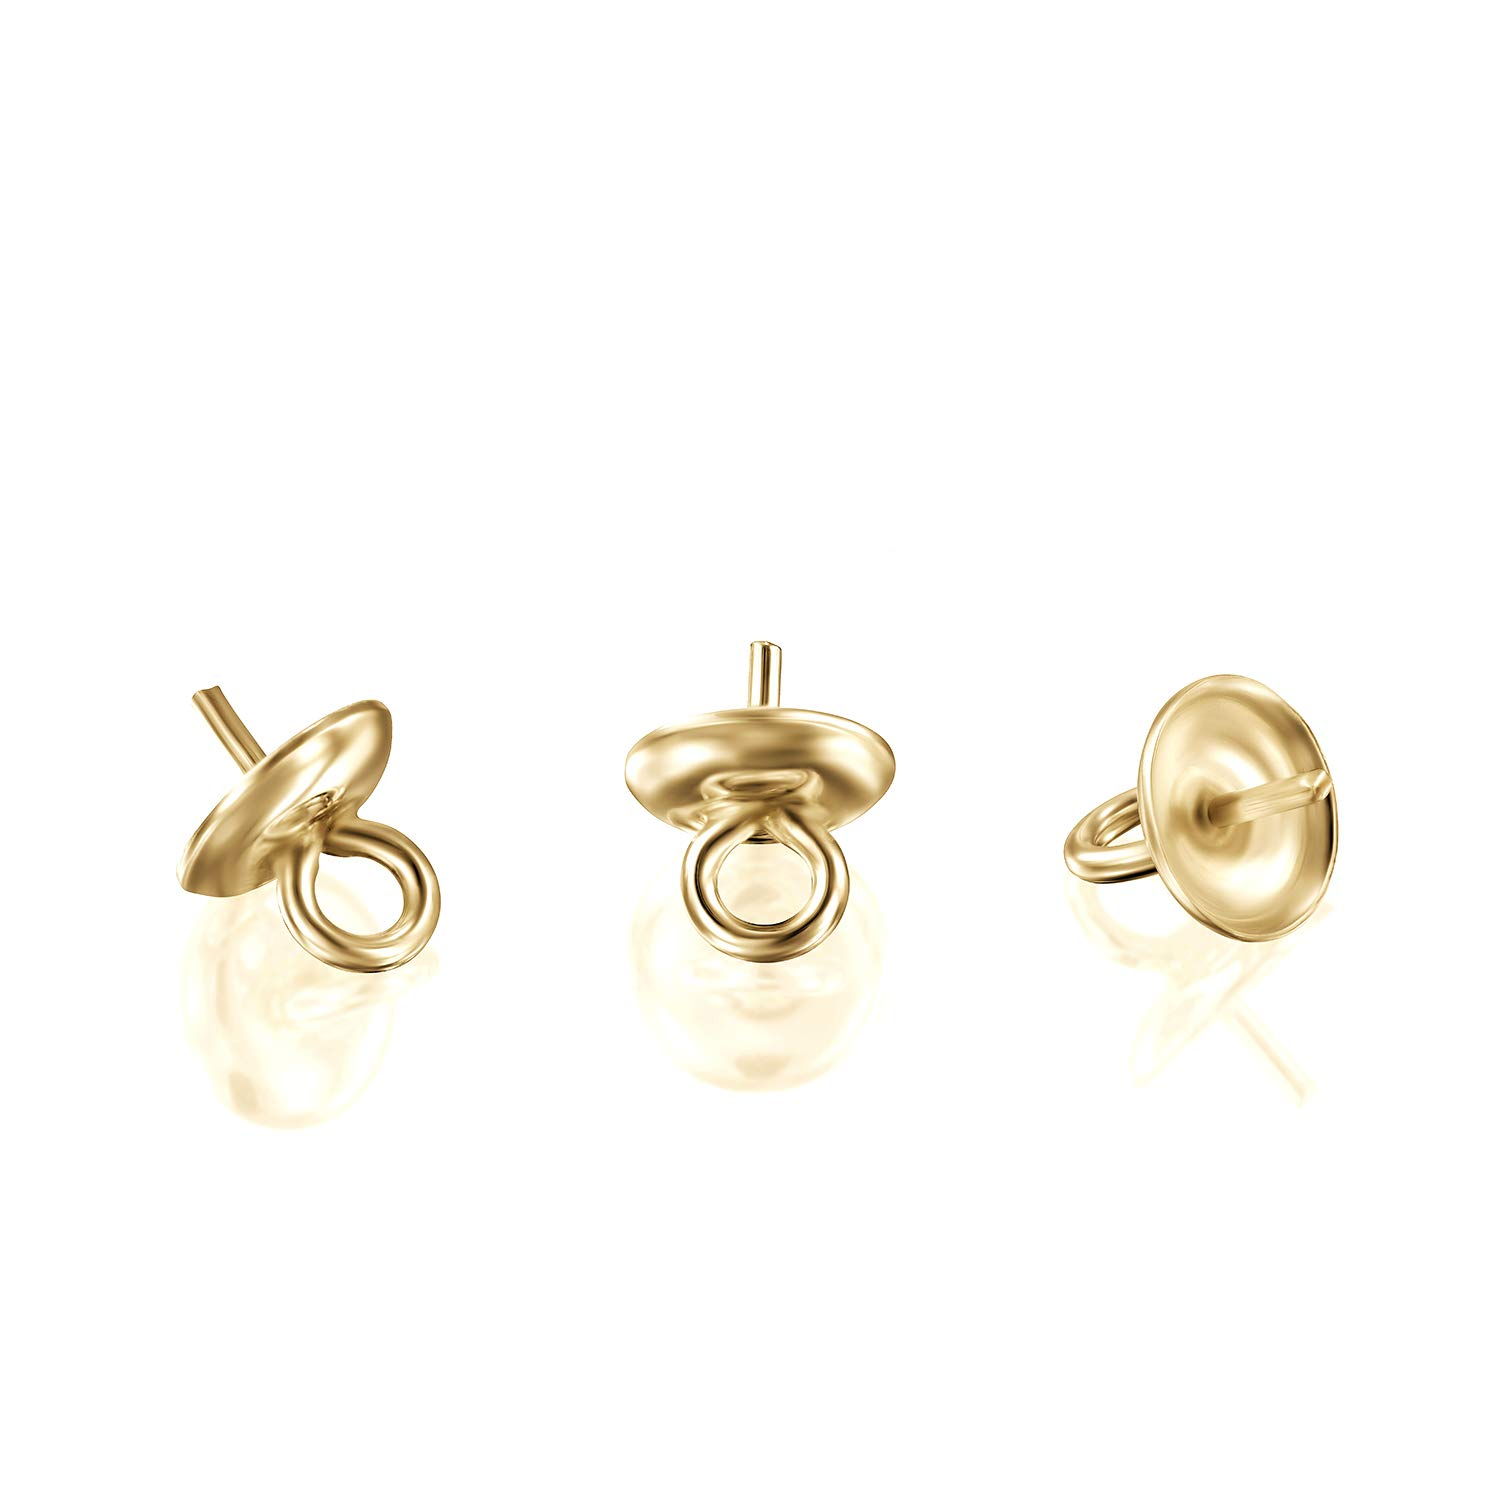 4 Pcs 14k Gold-Filled 5mm Peg Bail Eye Pin Cap for Half Drilled Pearls or Stones